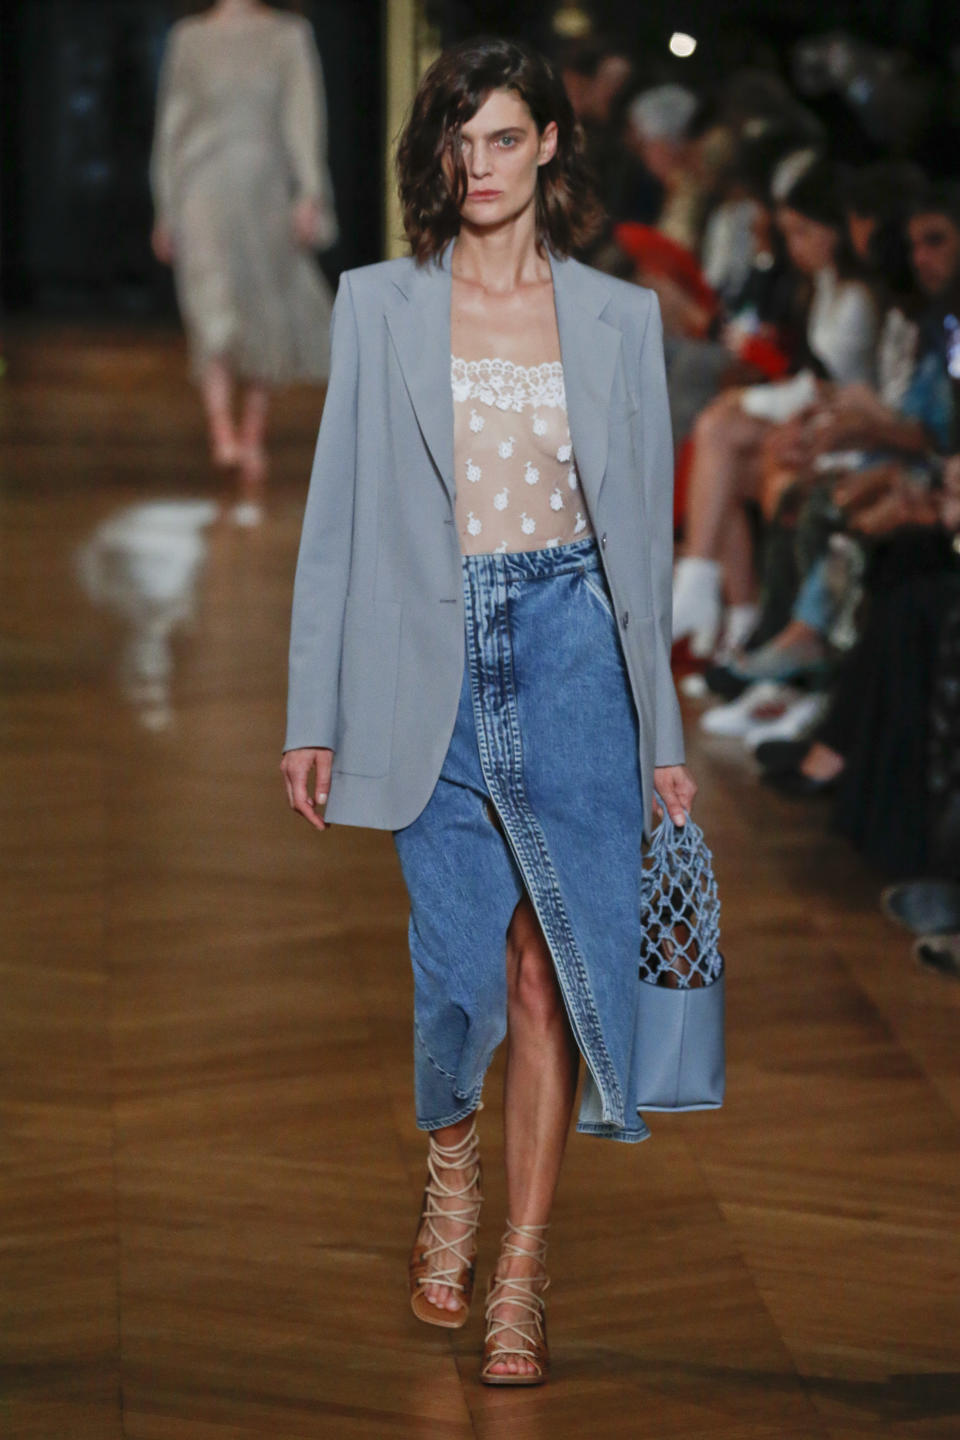 PARIS, FRANCE - SEPTEMBER 30: A model walks the runway during the Stella McCartney Ready to Wear Spring/Summer 2020 fashion show as part of Paris Fashion Week on September 30, 2019 in Paris, France. (Photo by Victor VIRGILE/Gamma-Rapho via Getty Images)